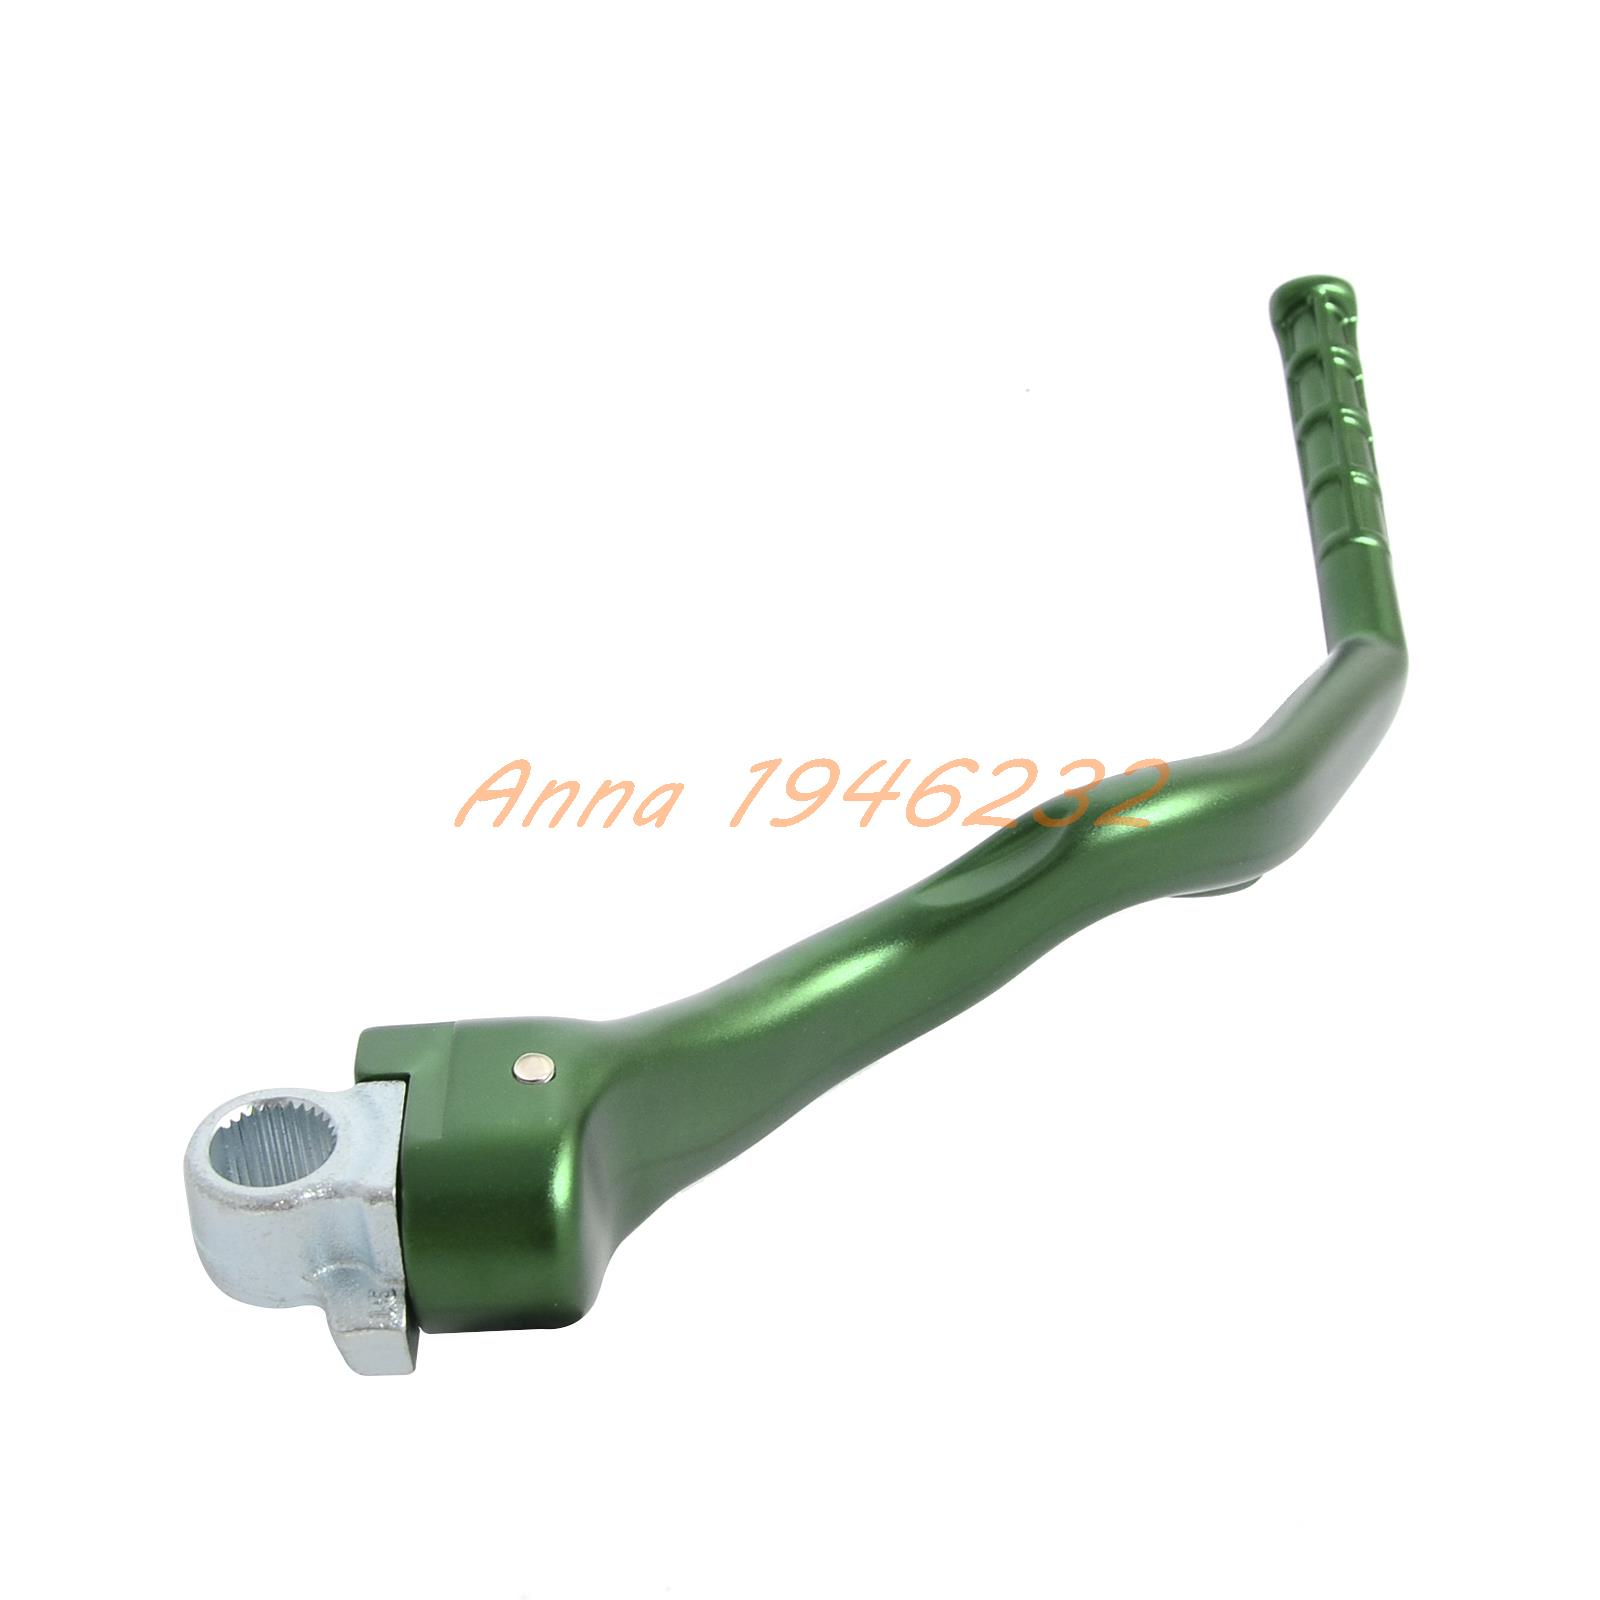 Motorcycle Forged Kick Start Lever Starter for Kawasaki KX250F 2013 2014 2015 2016 forged kick start lever starter for kawasaki kx450f 2007 2015